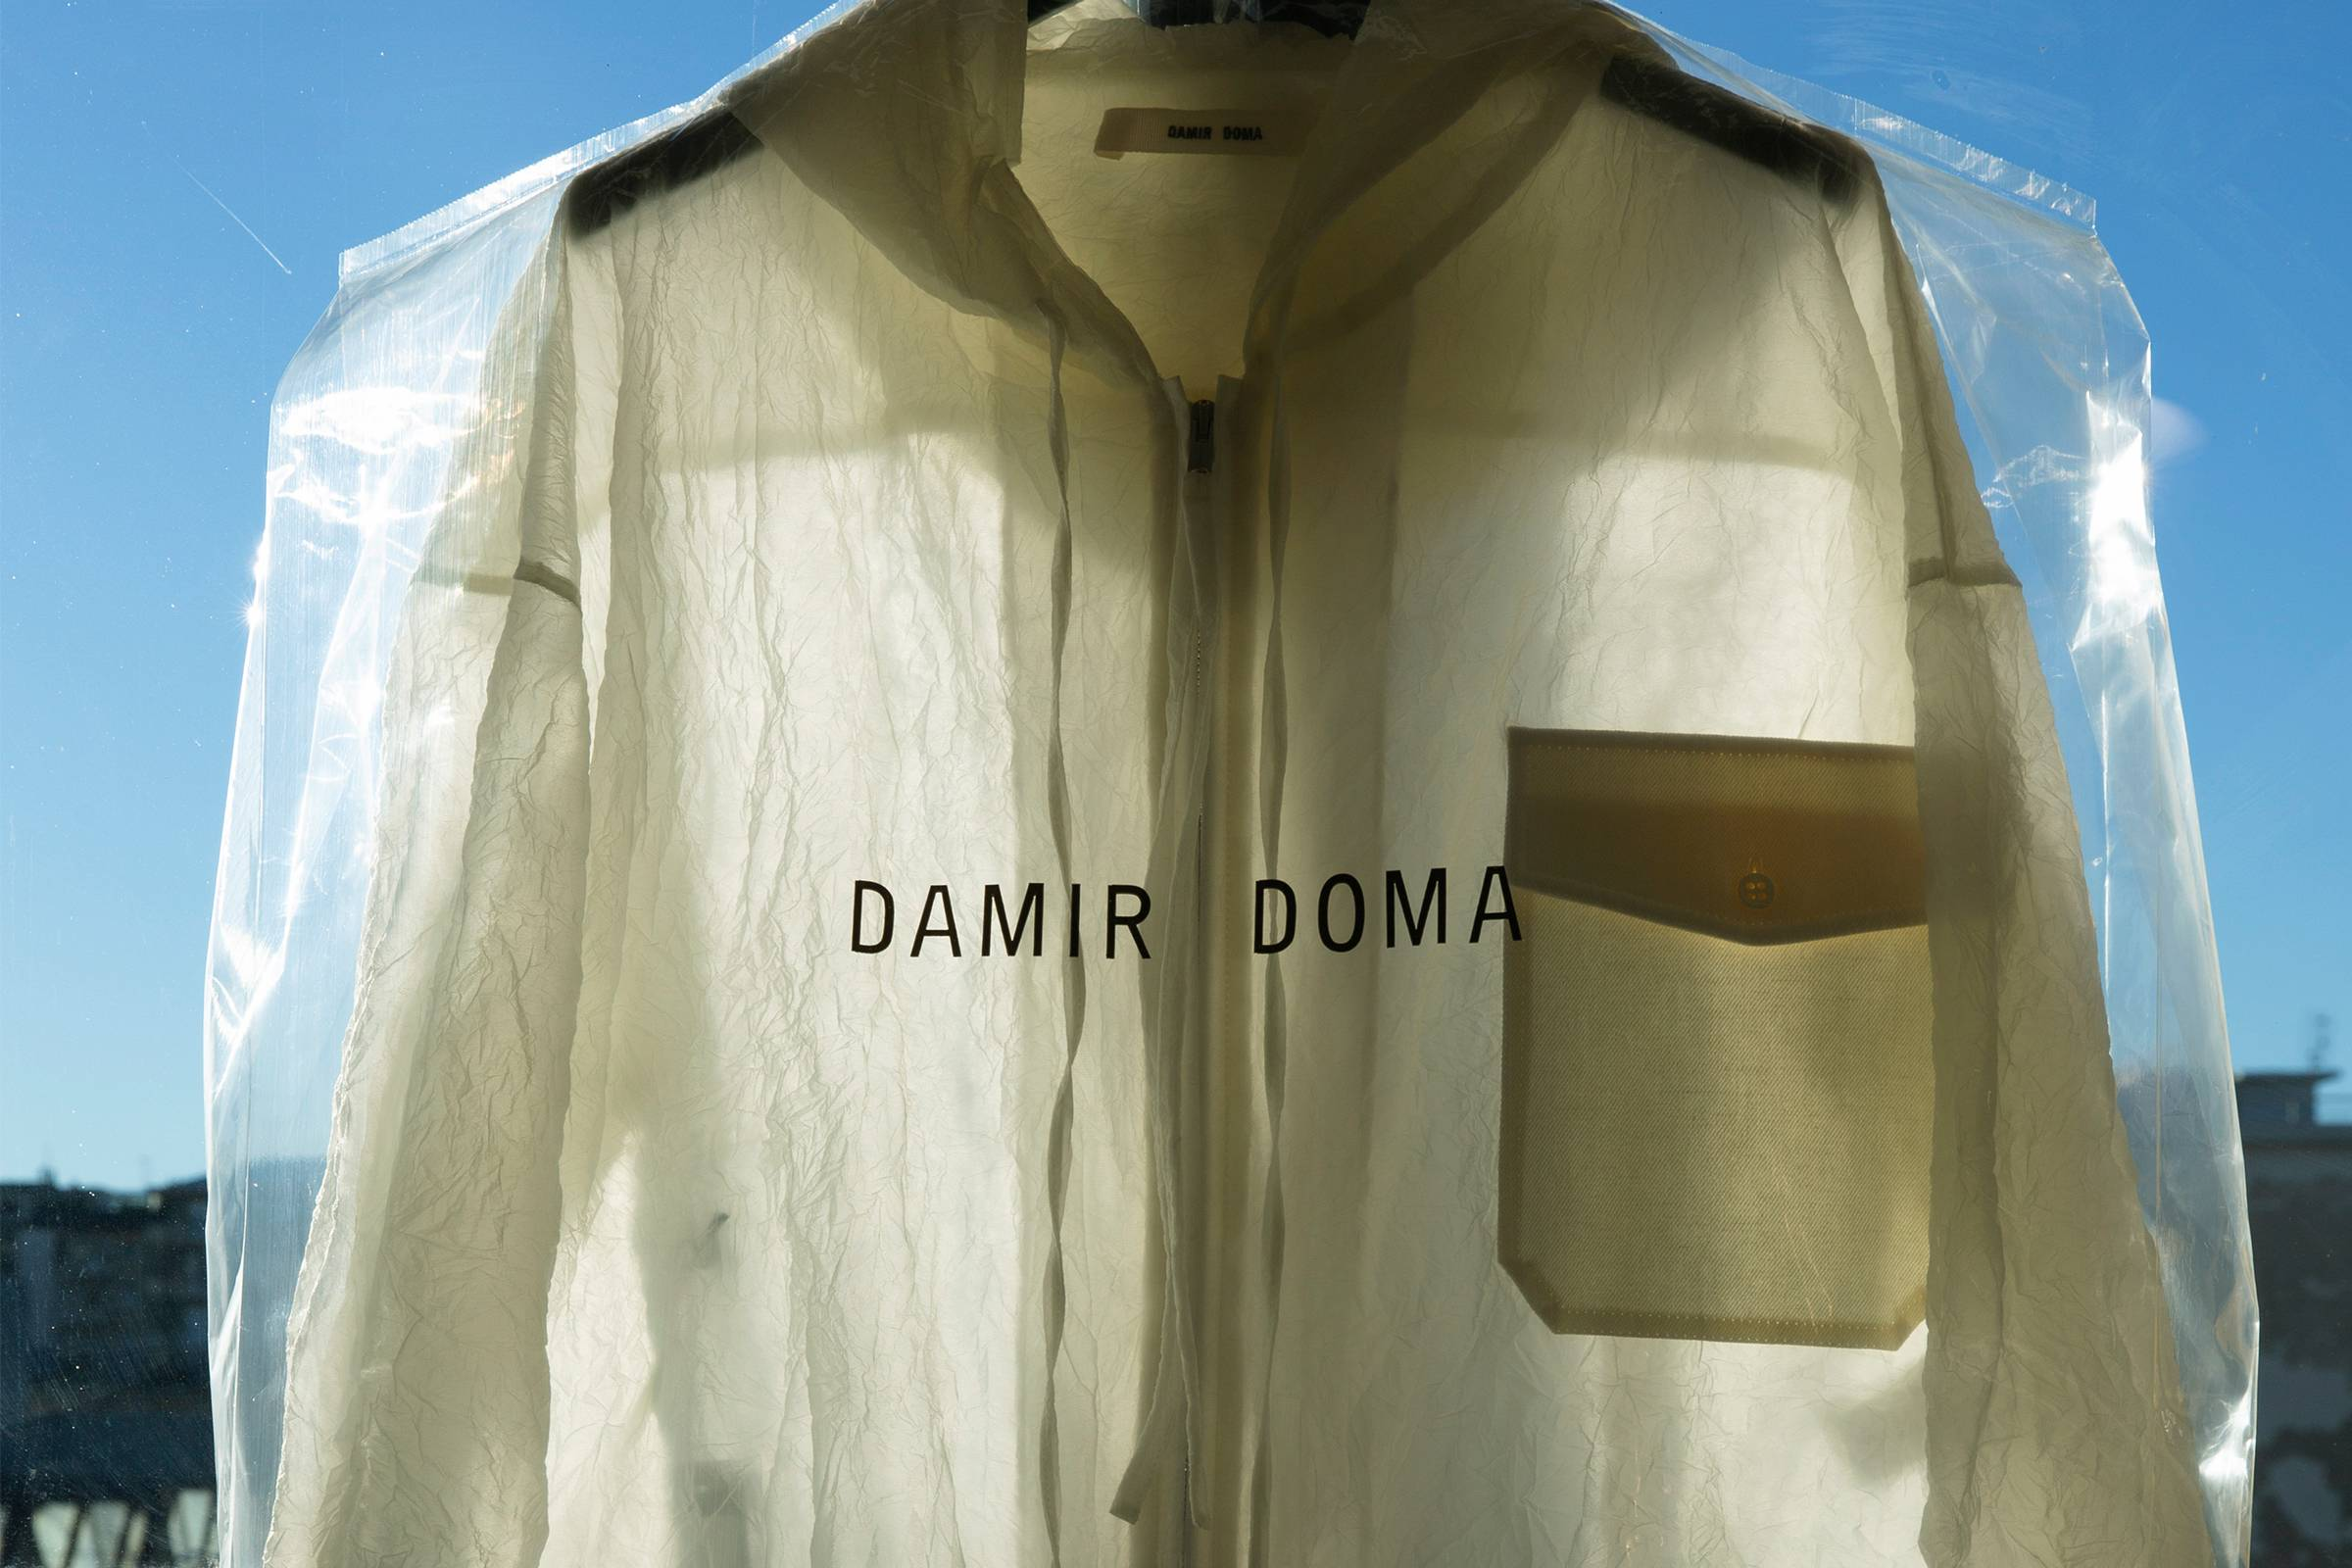 Always Moving Forward: Discussing the Past, Present and Future with Damir Doma